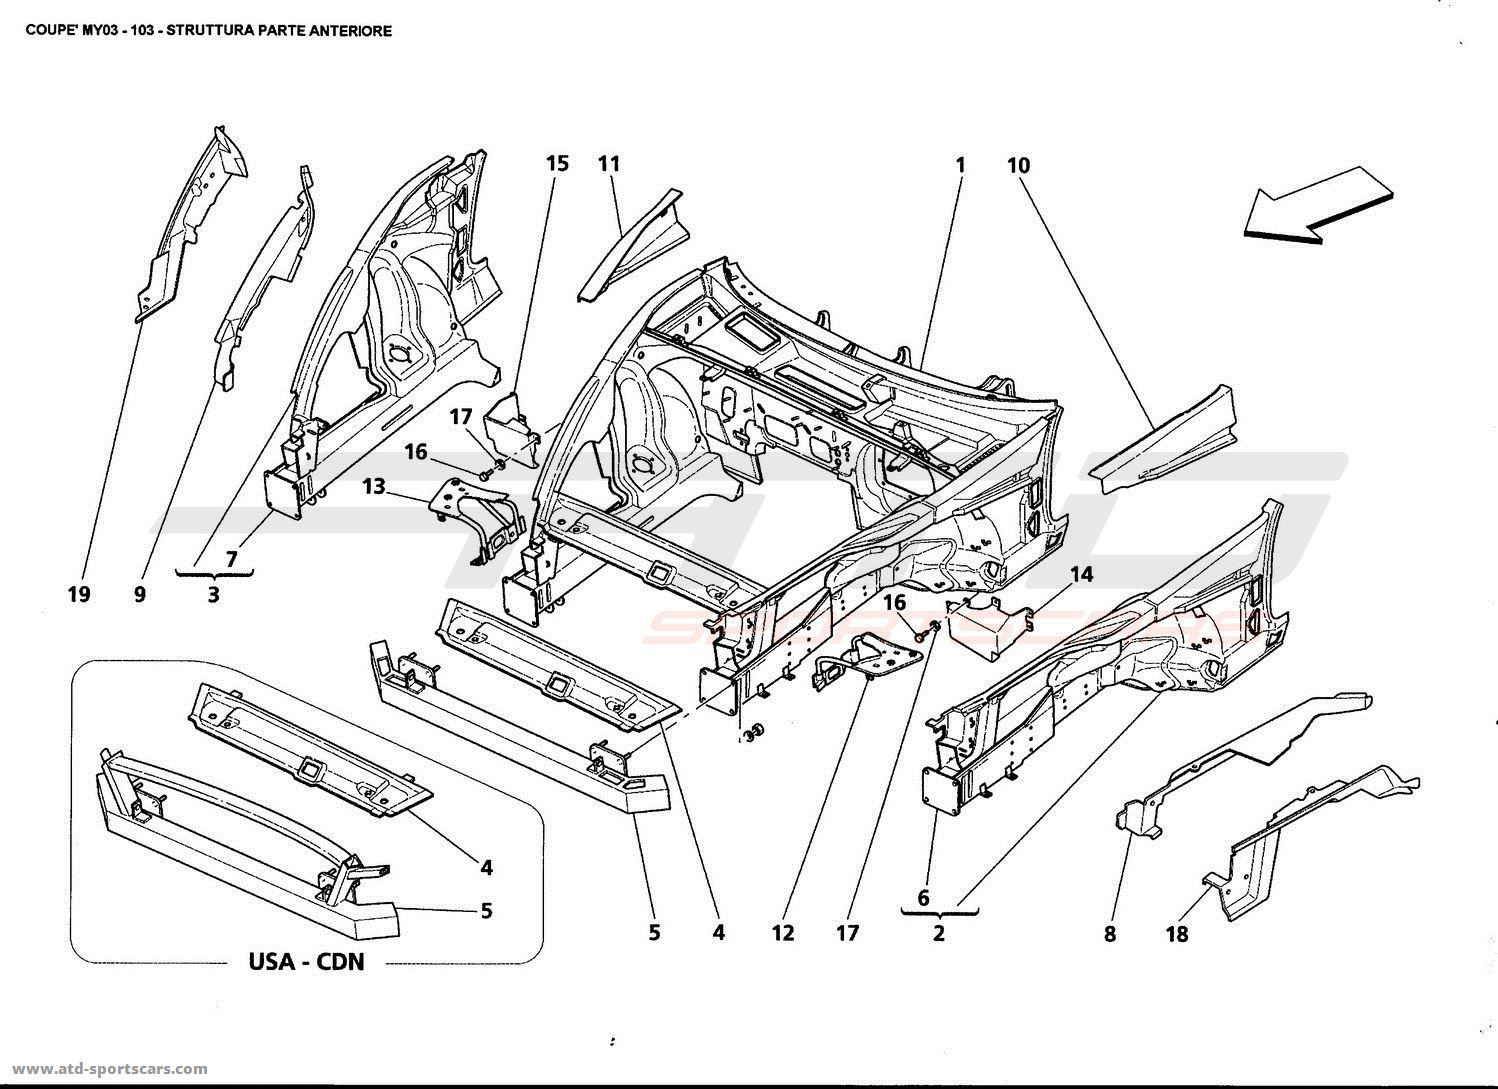 Maserati 4200 GT Coupé 2003 Structural frames parts at ATD